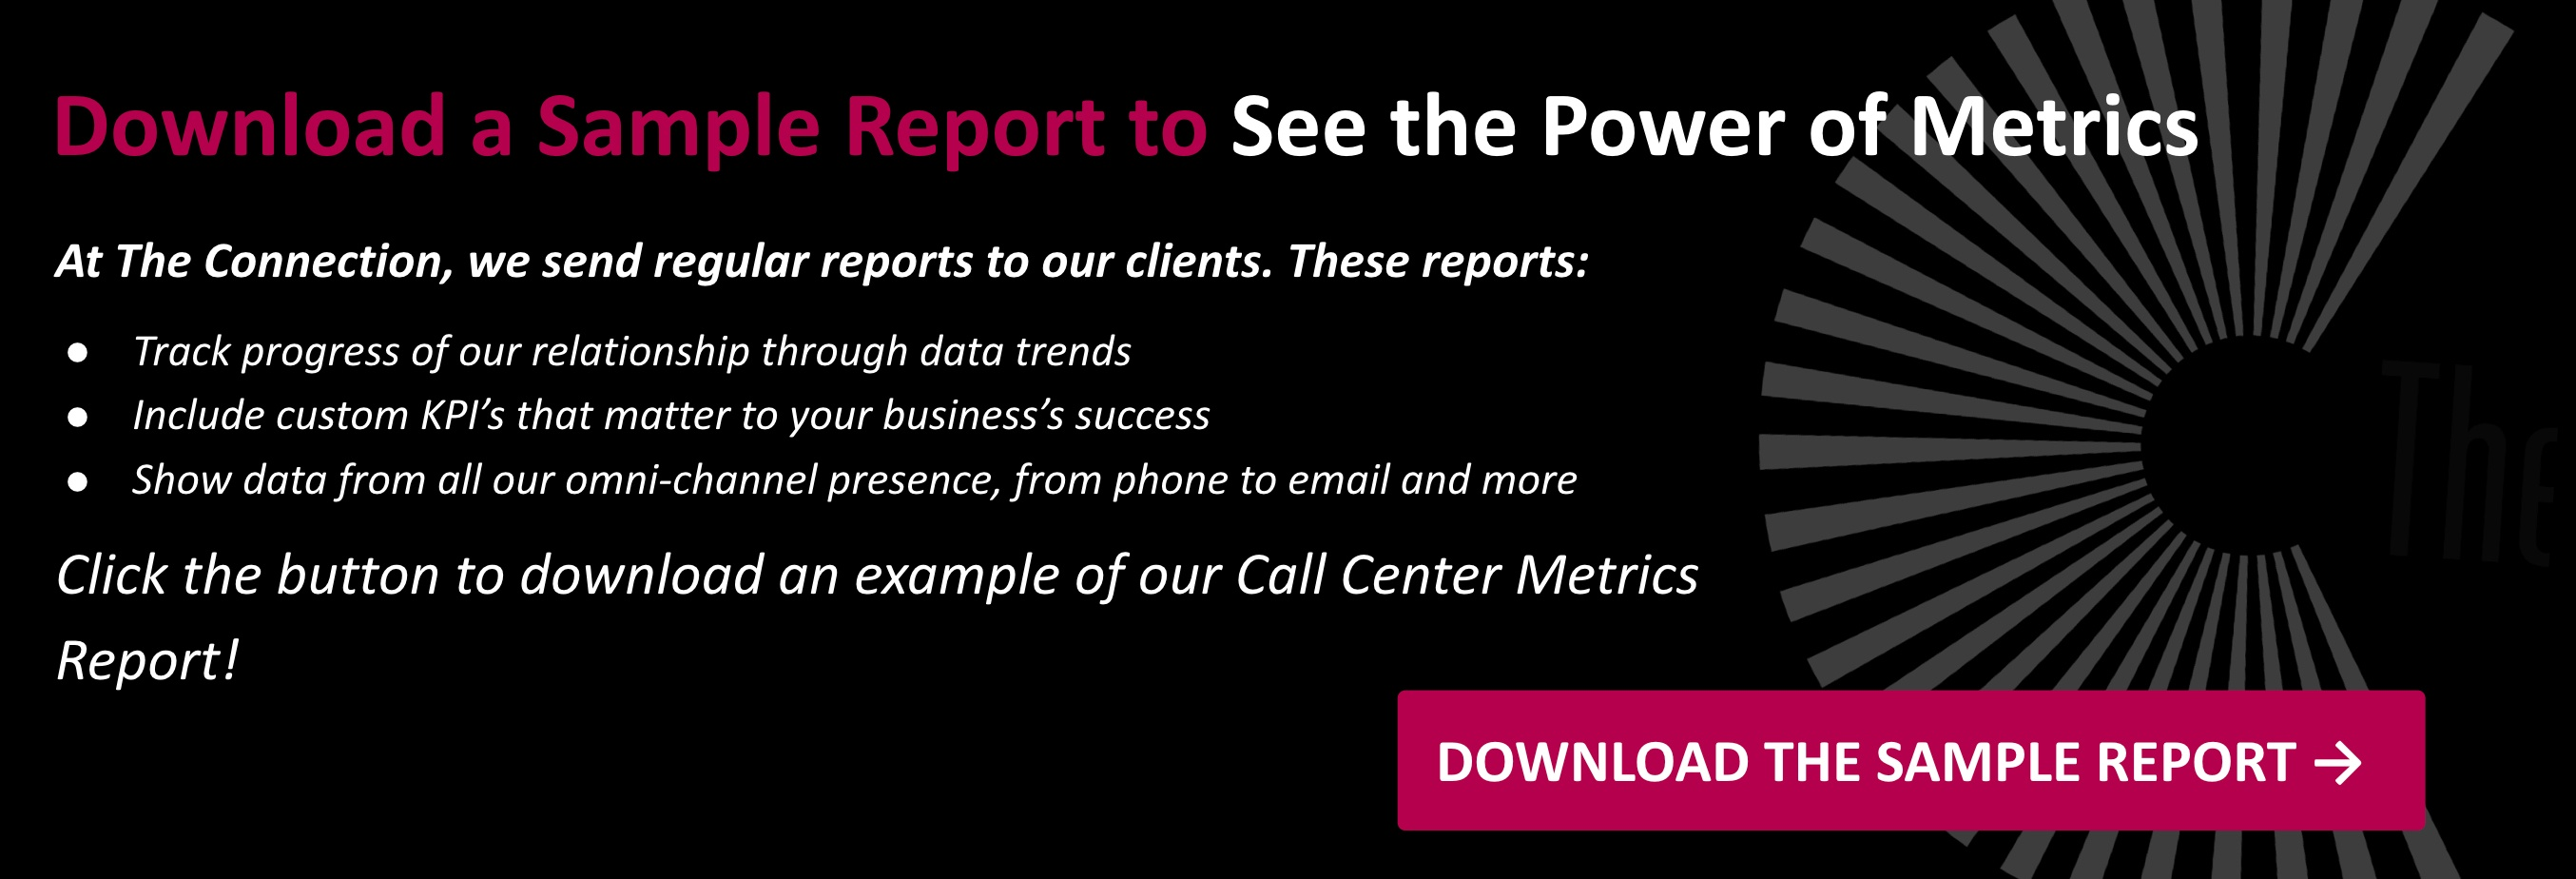 sample call center metrics report